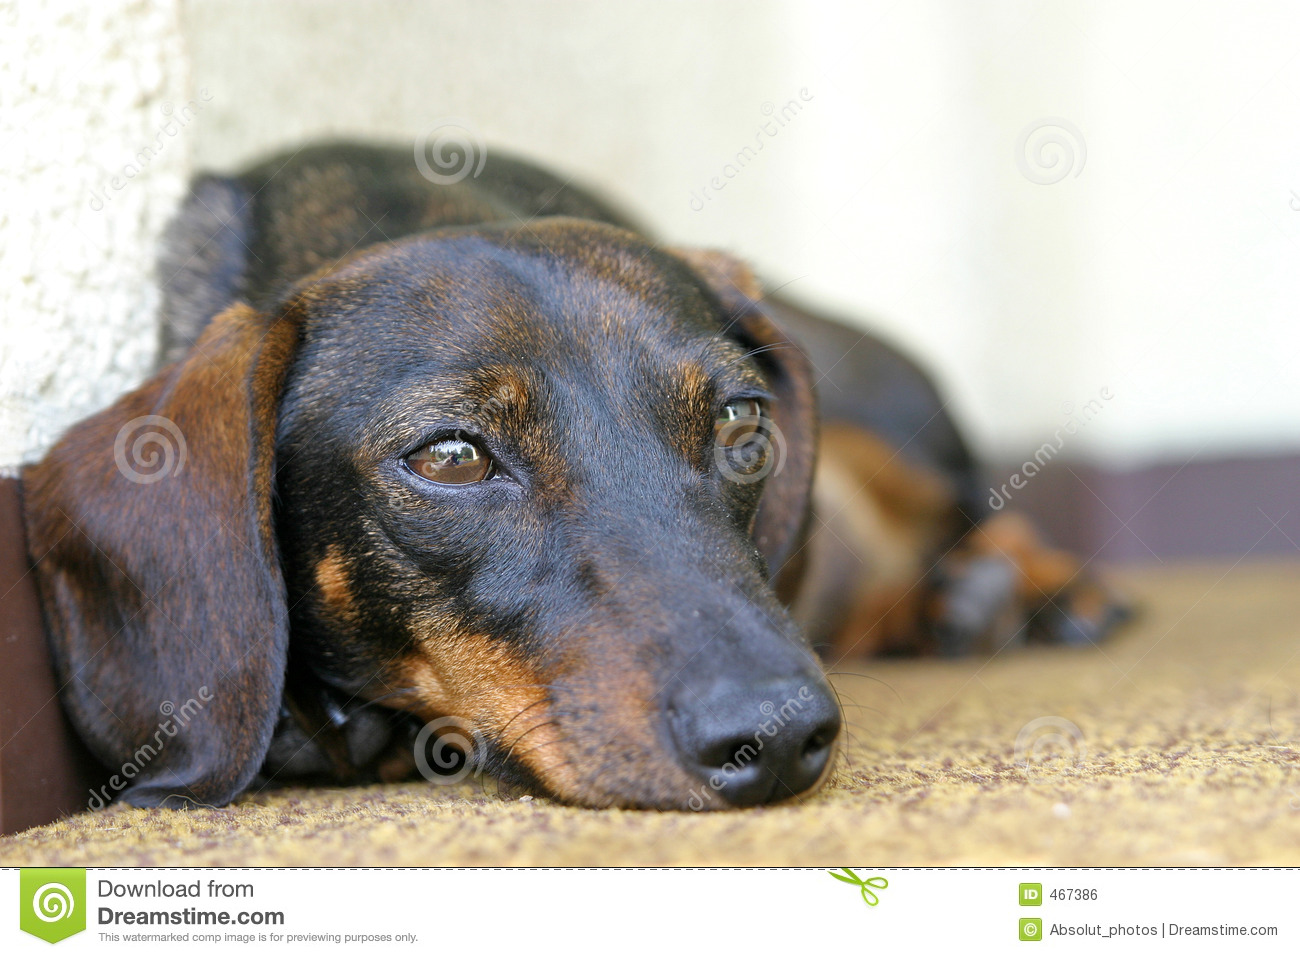 Download Dachshund Dog stock photo. Image of barking, lying, domesticated - 467386